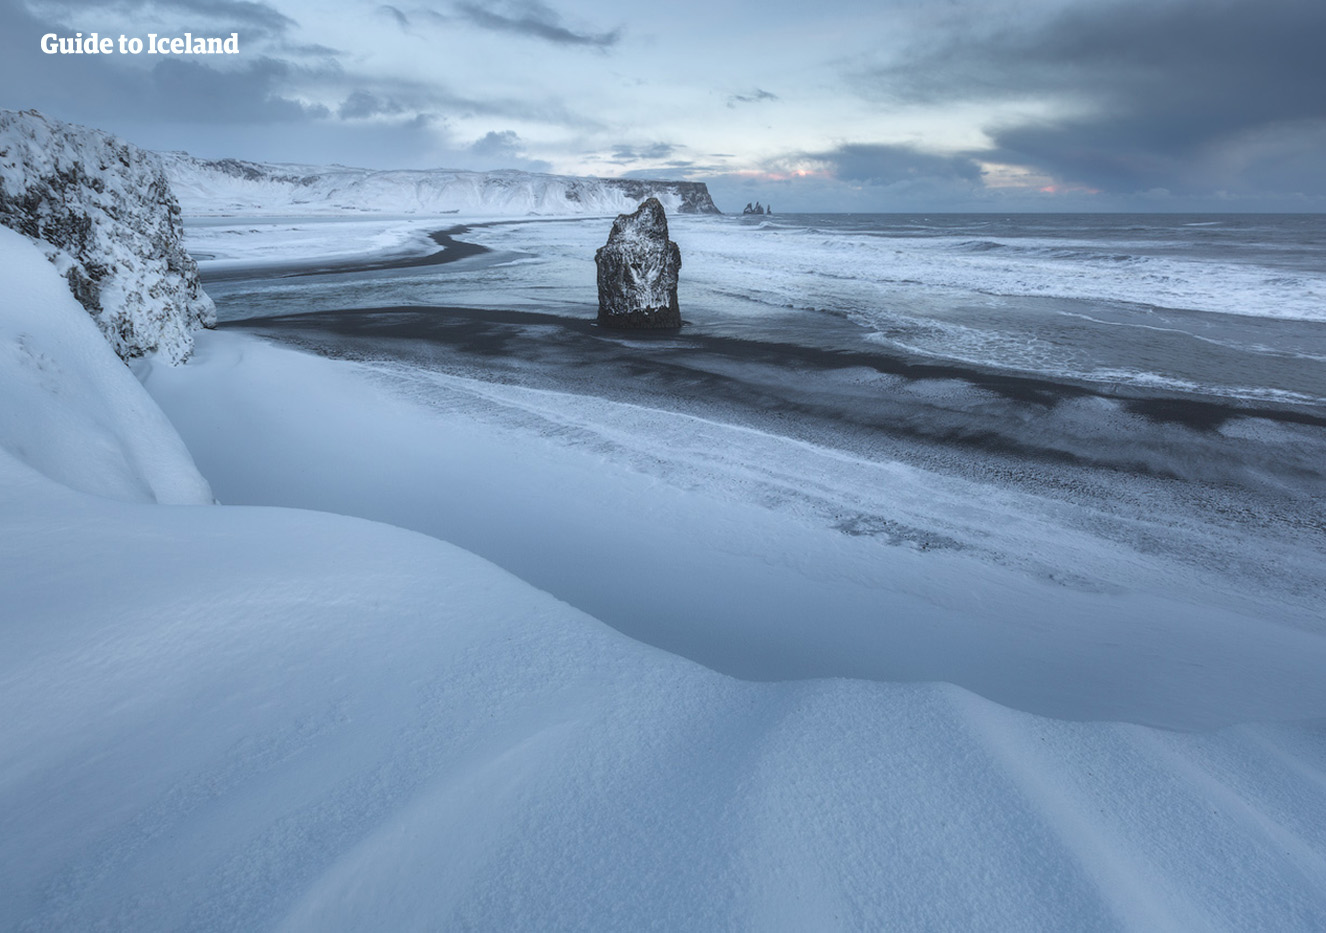 The Reynifjara Black Sand Beach in the South of Iceland, covered in a thin blanket of snow.